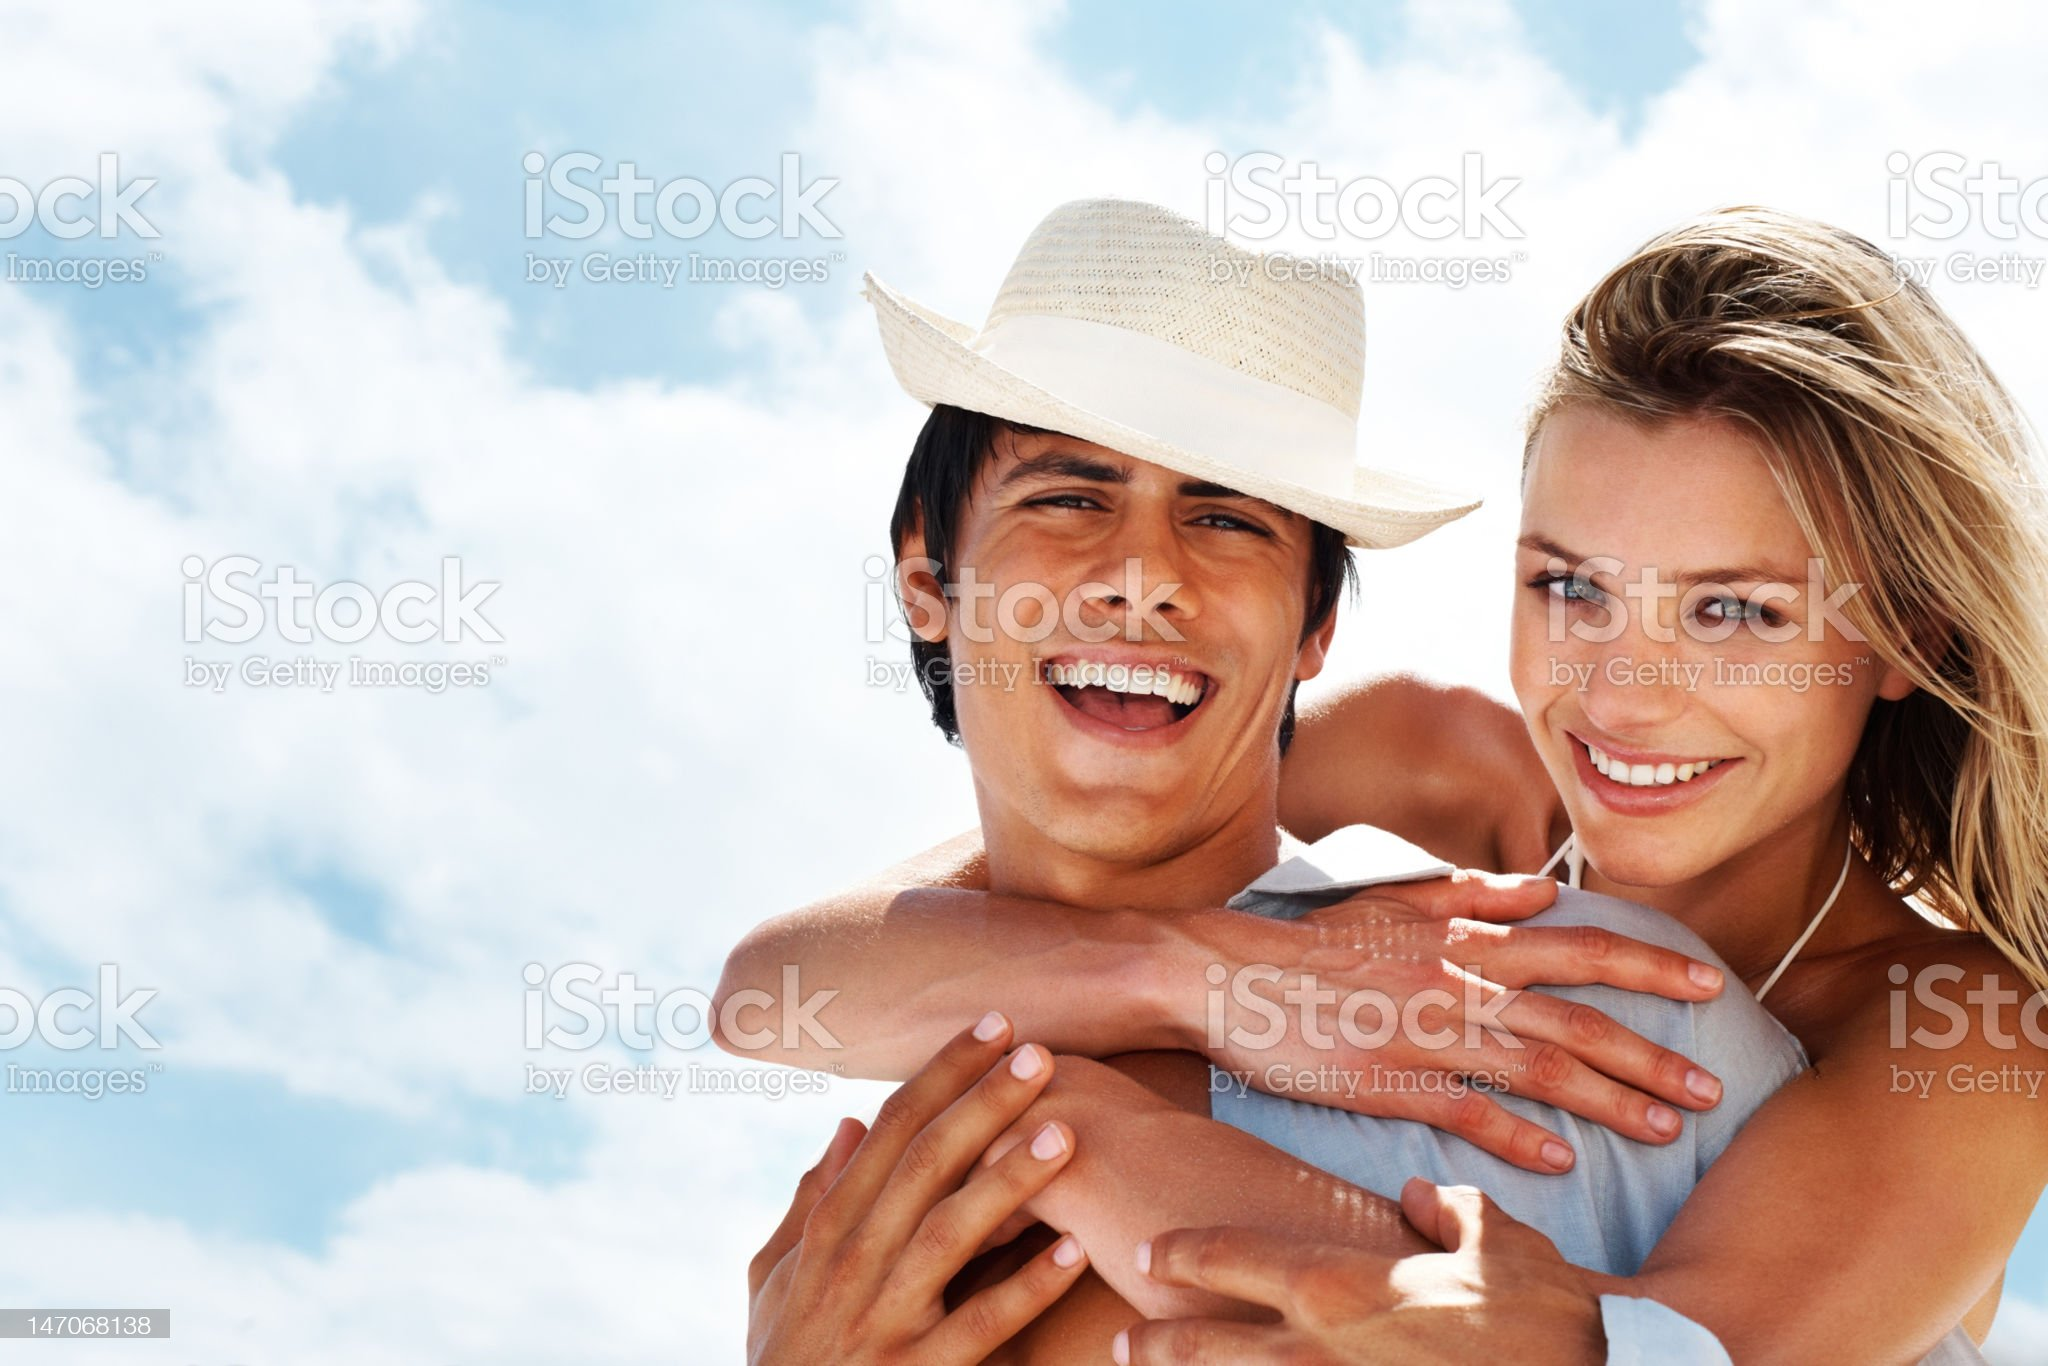 Close-up of a young couple smiling and embracing royalty-free stock photo